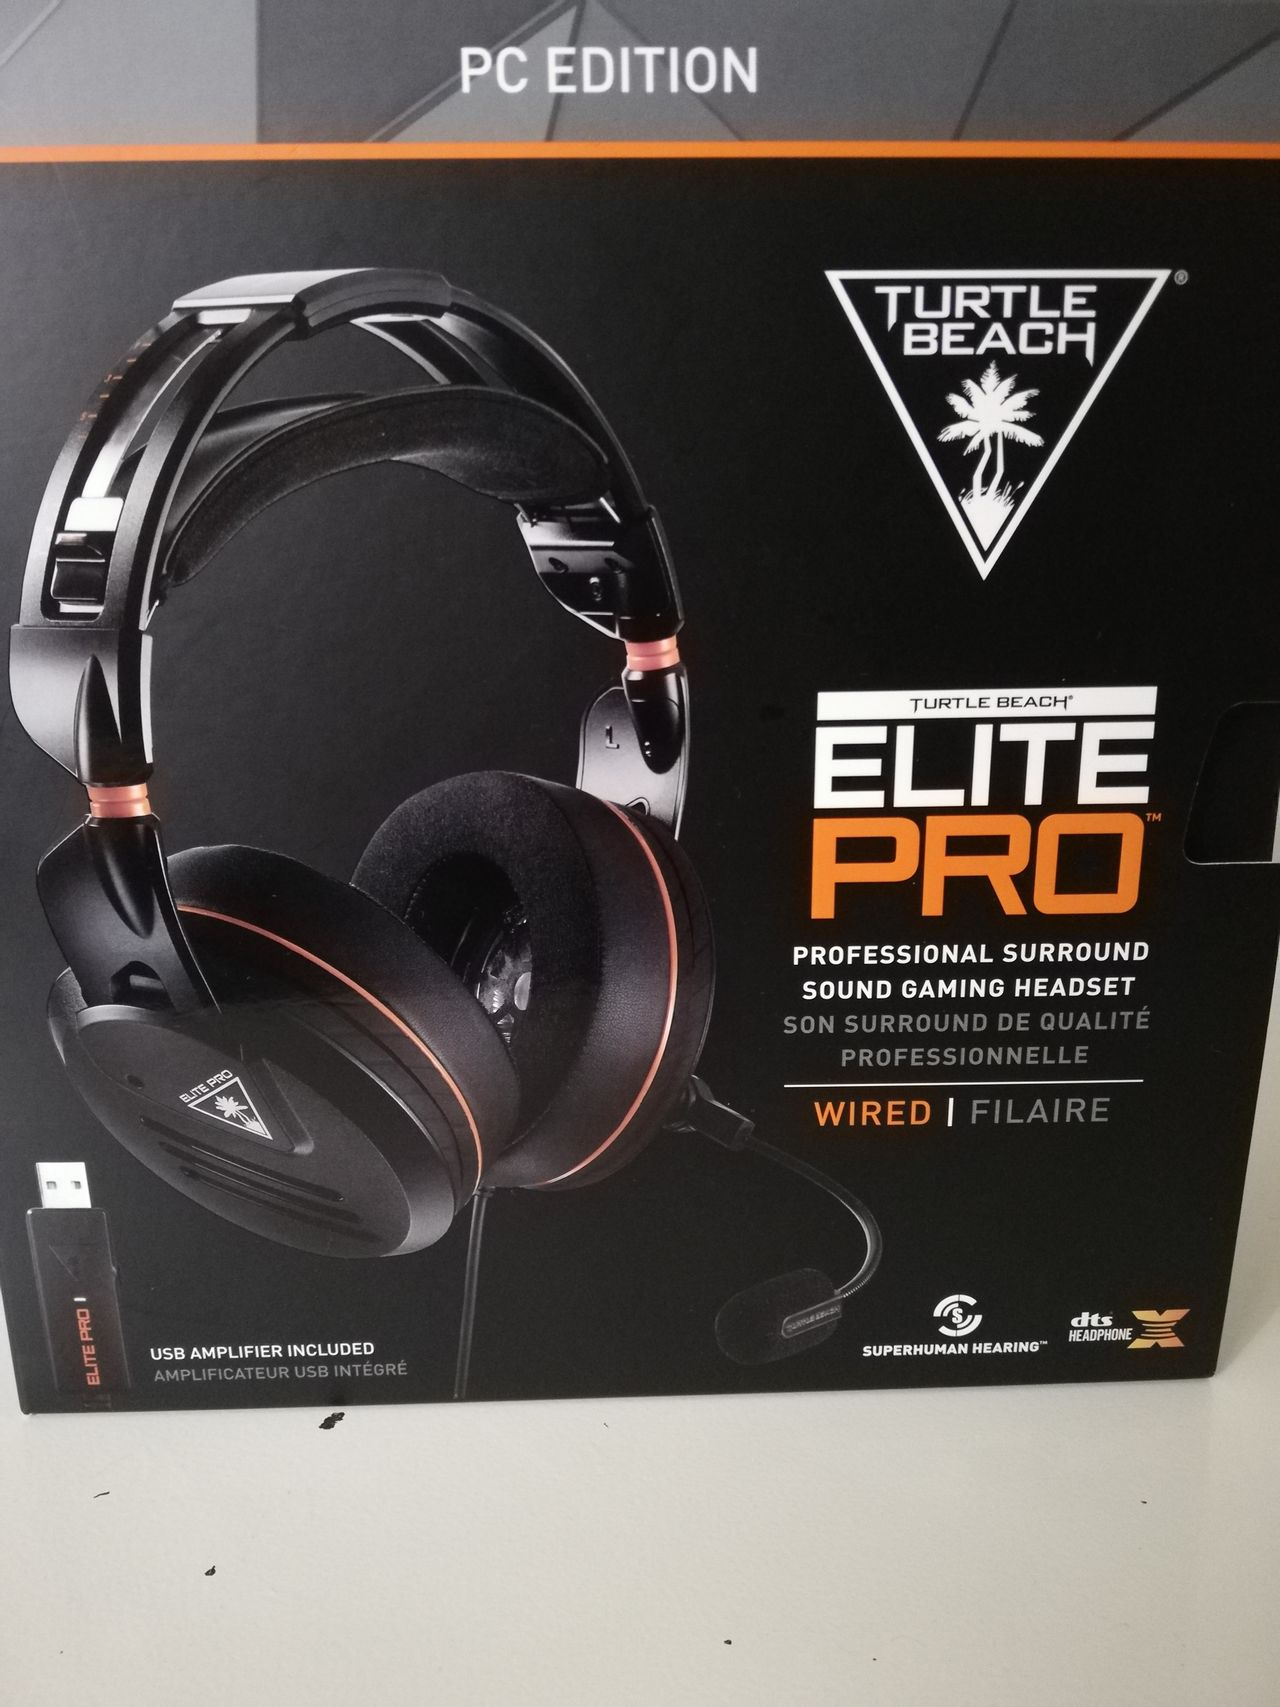 Turtle Beach Grip 300 gaming mus , ADX Firecast A01 mikrofon